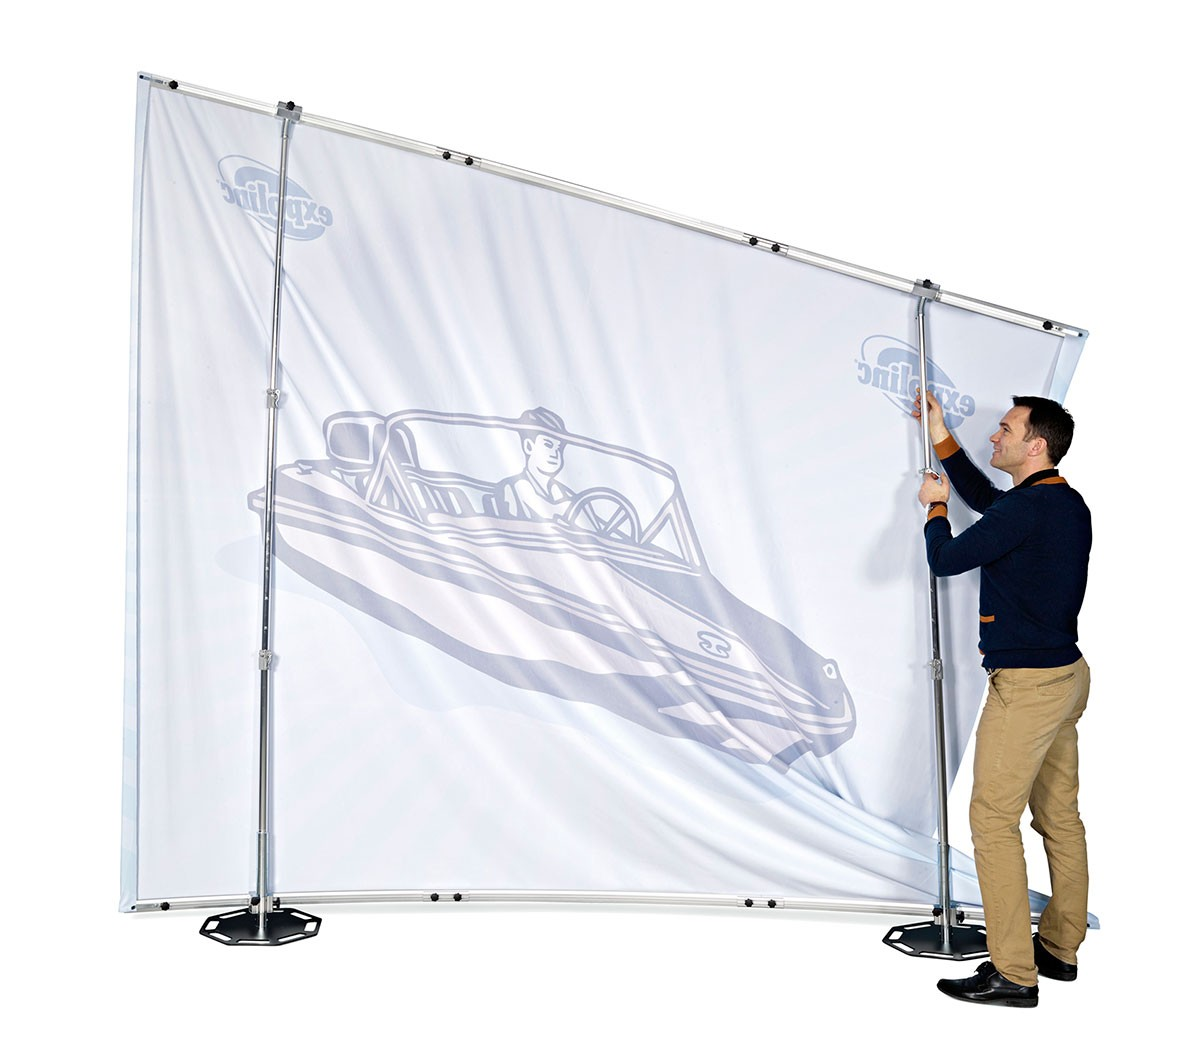 Expolinc Fabric System 10x8 Inner Curve Wall